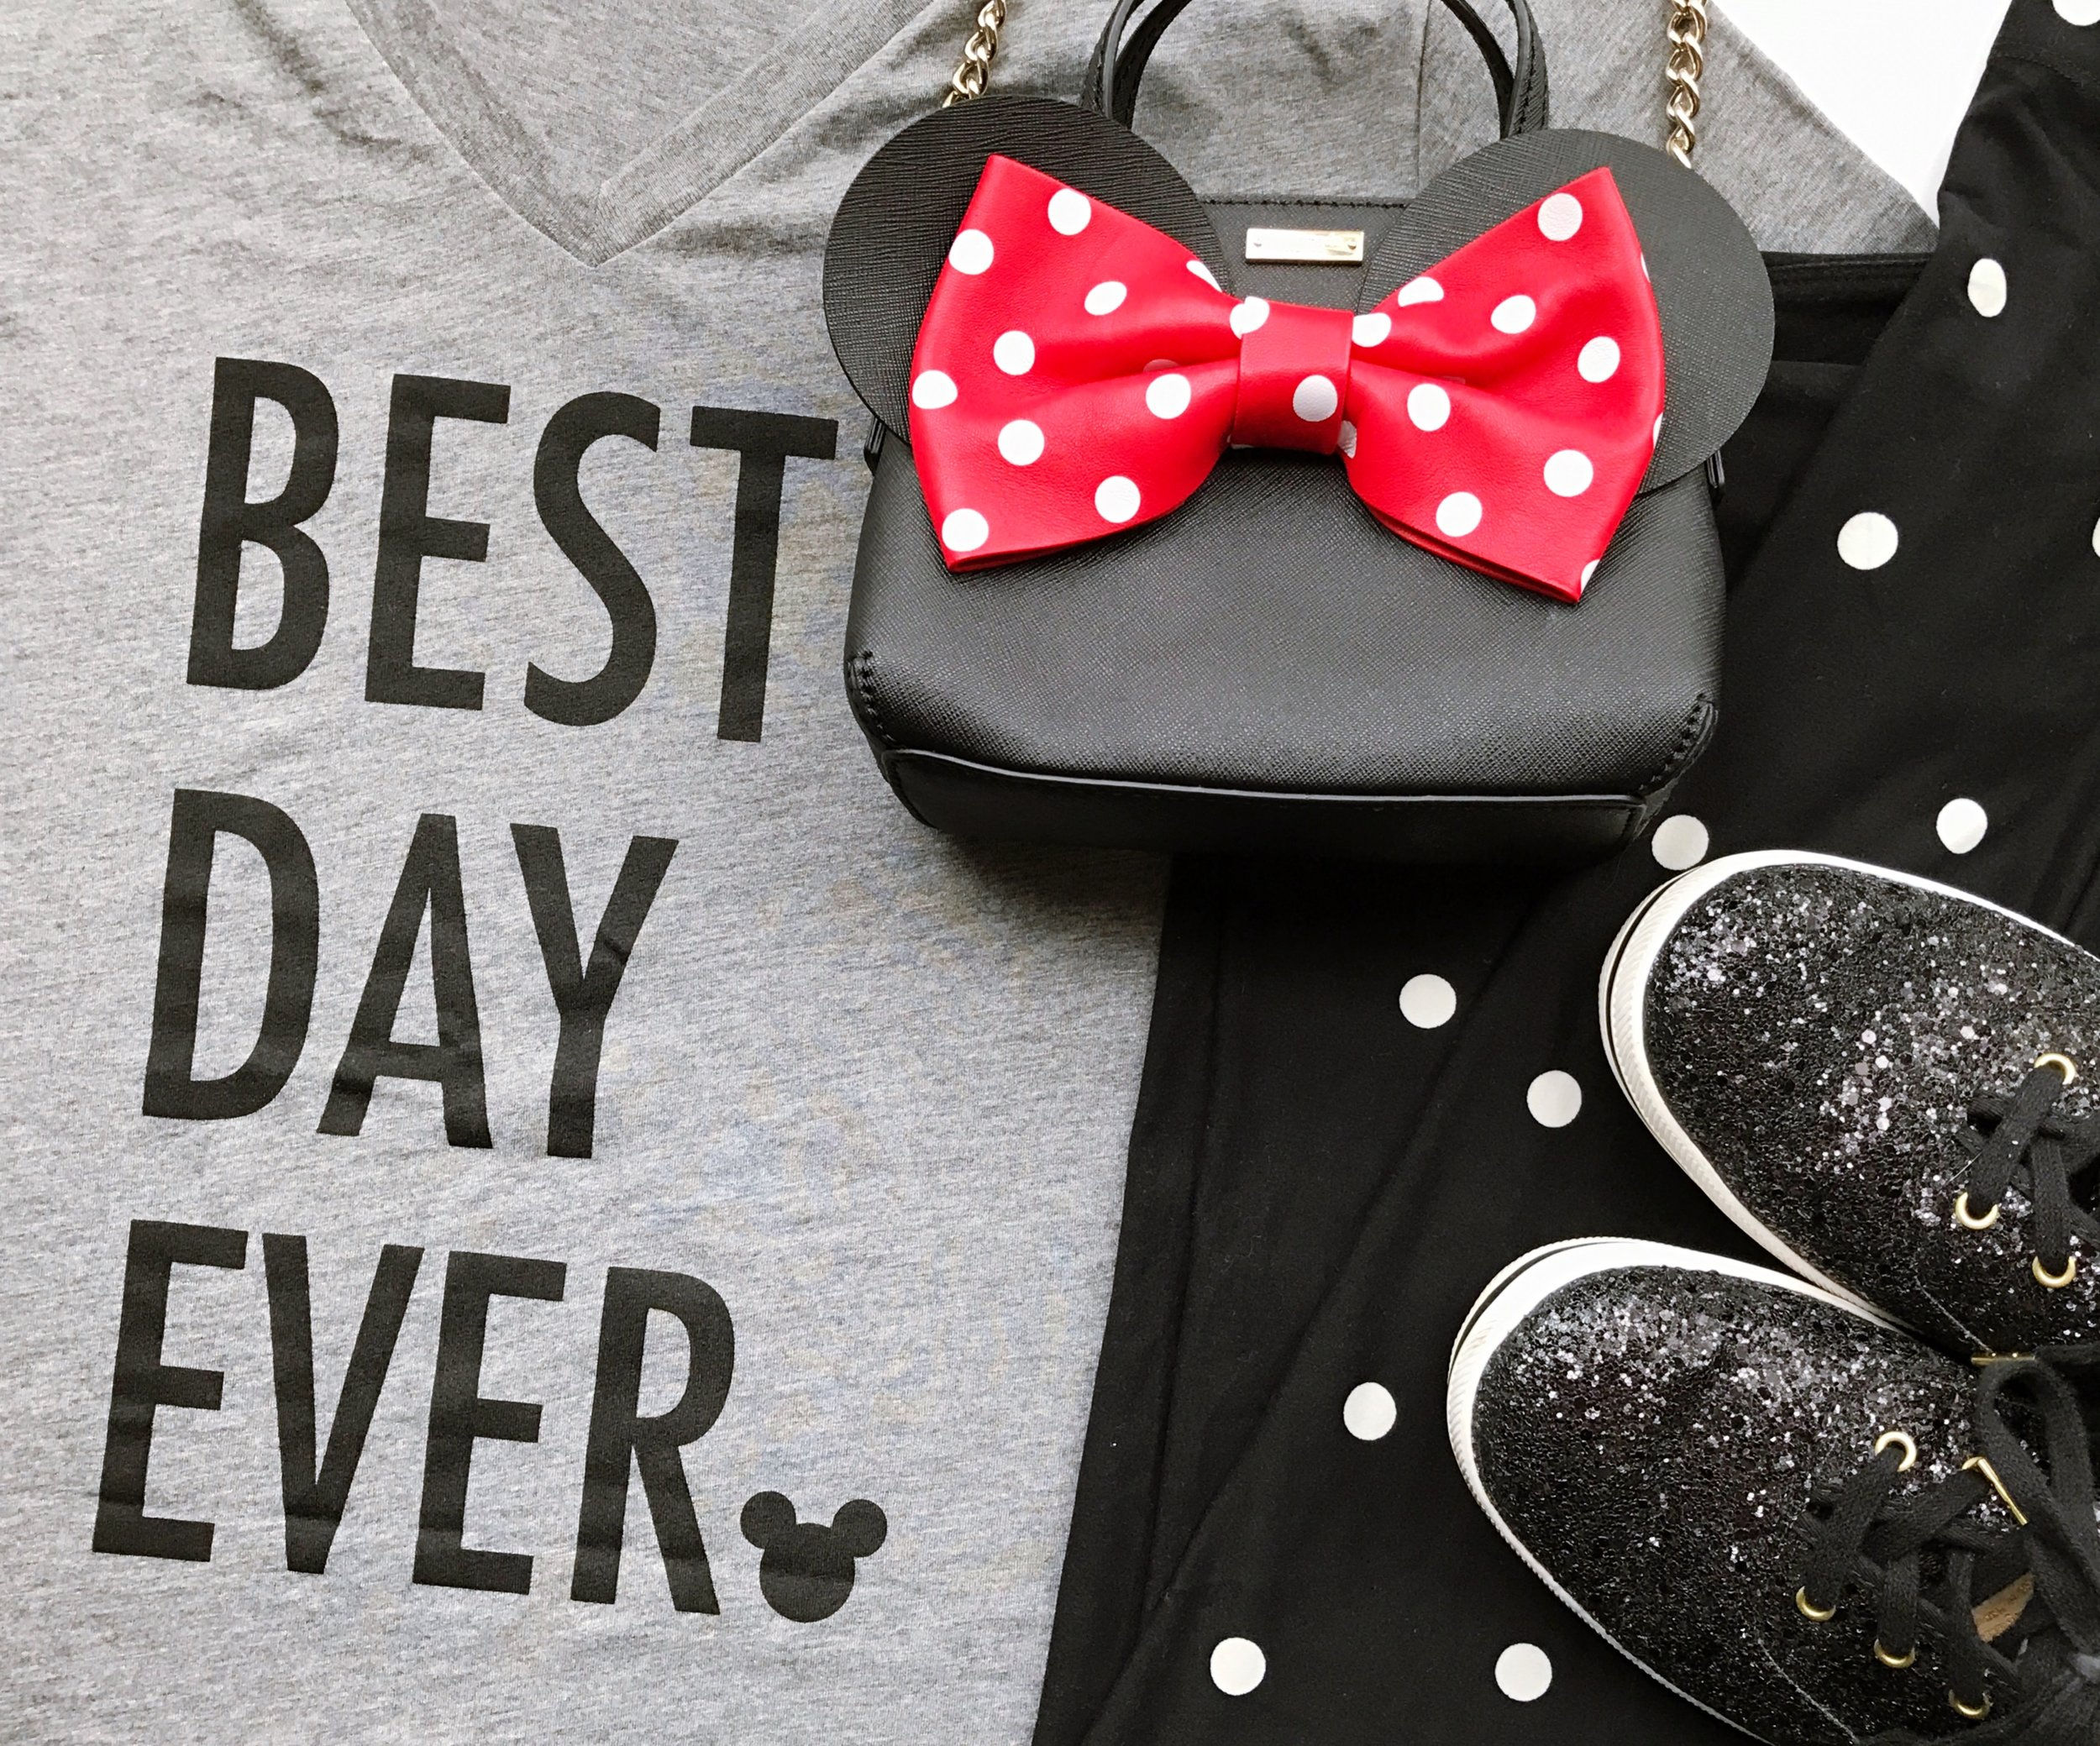 For a LATE NIGHT in Magic Kingdom I wanted to be comfy in Lularoe polka dot leggings, and yet another  Best Day Ever tee  from Happily Ever Tees.   My shoes are the  Kate Spade Glitter Keds  and the bag is the  Minnie Kate Spade crossbody .